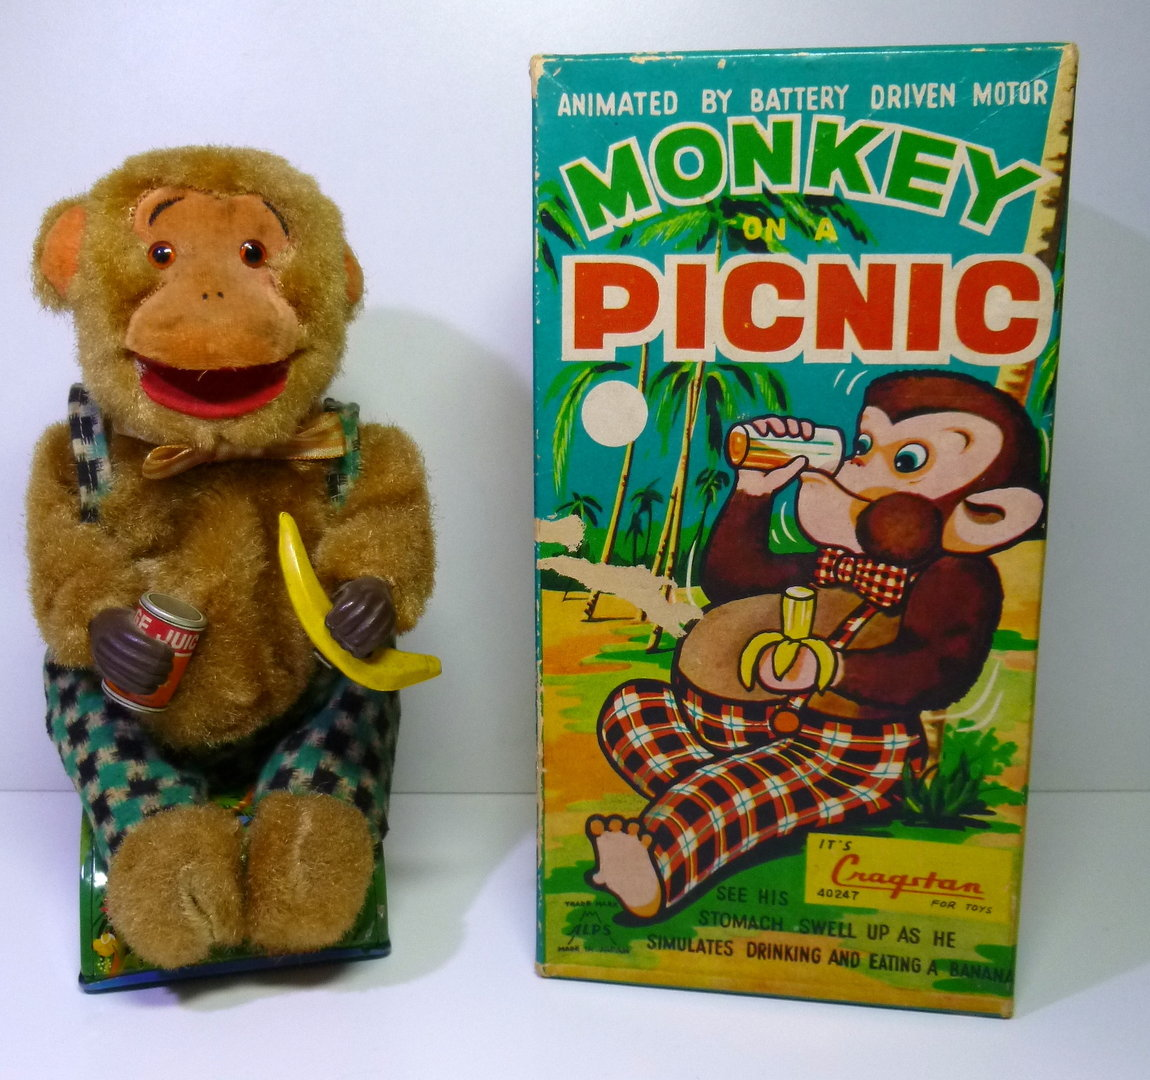 "ALPS / Cragstan (Japan) # 1950's ""MONKEY on a PICNIC"" battery-toy in Original Box !!"